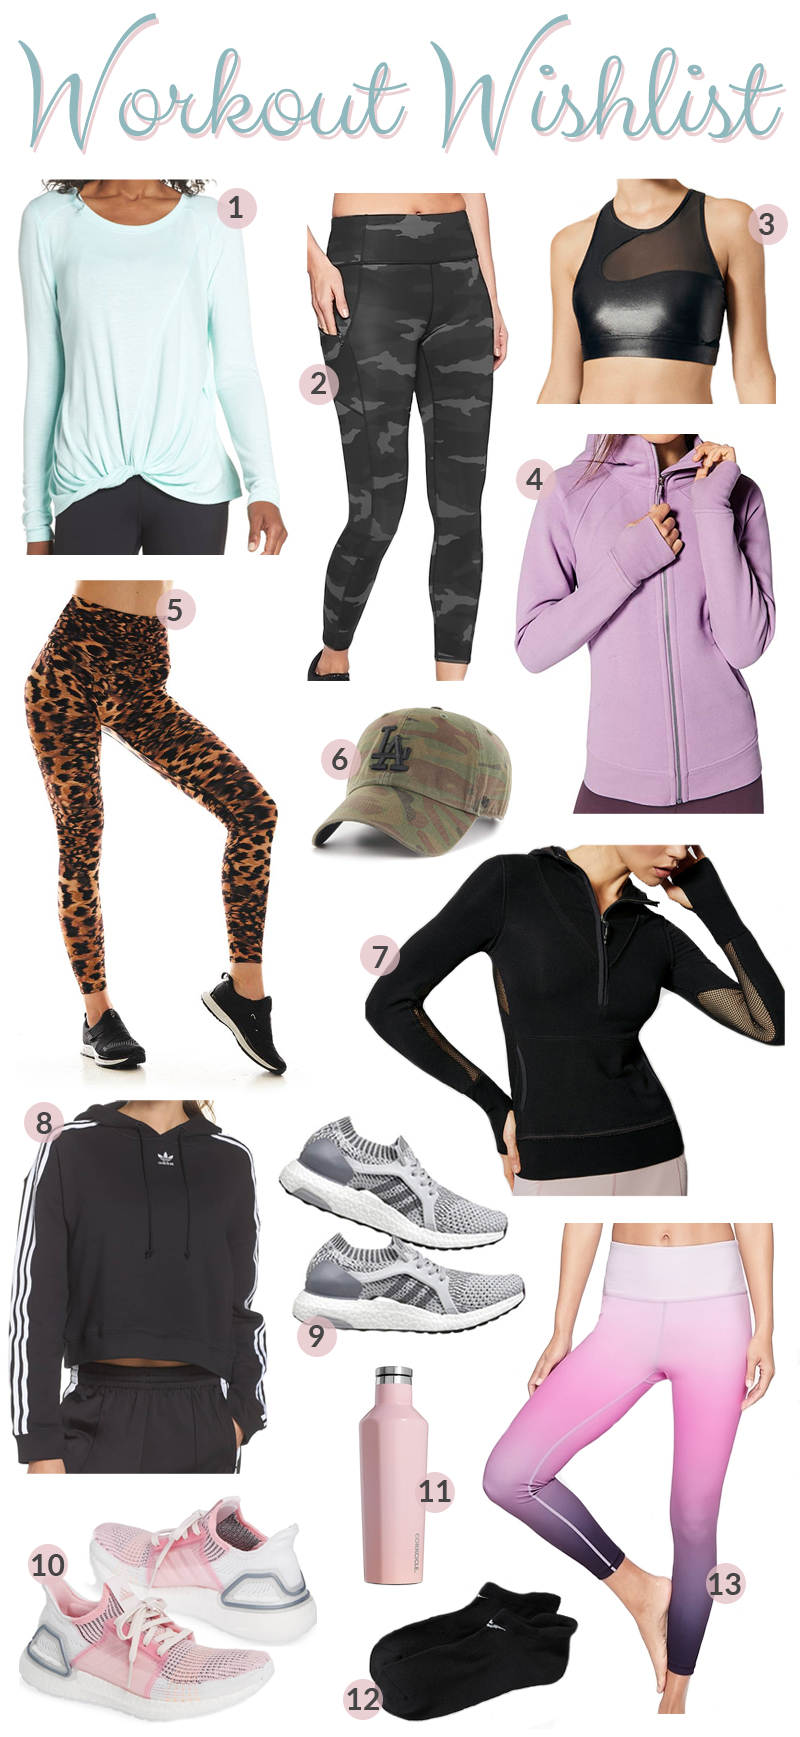 The Best Workout Gear for Women | Walking in Memphis in High Heels